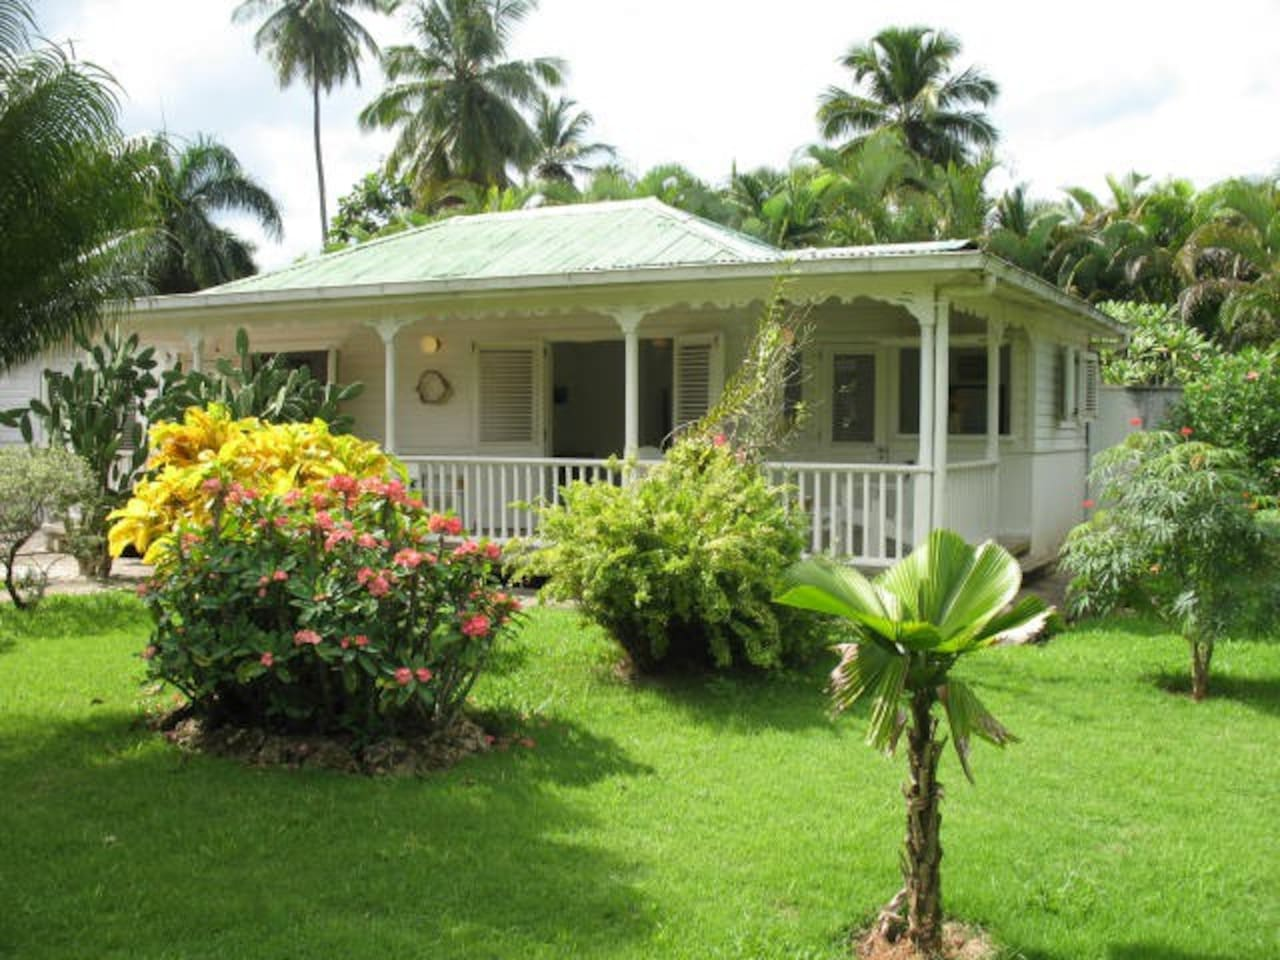 Caribbean villa in tropical parc. Gated Community. Close to every thing. No car needed. Free WiFi